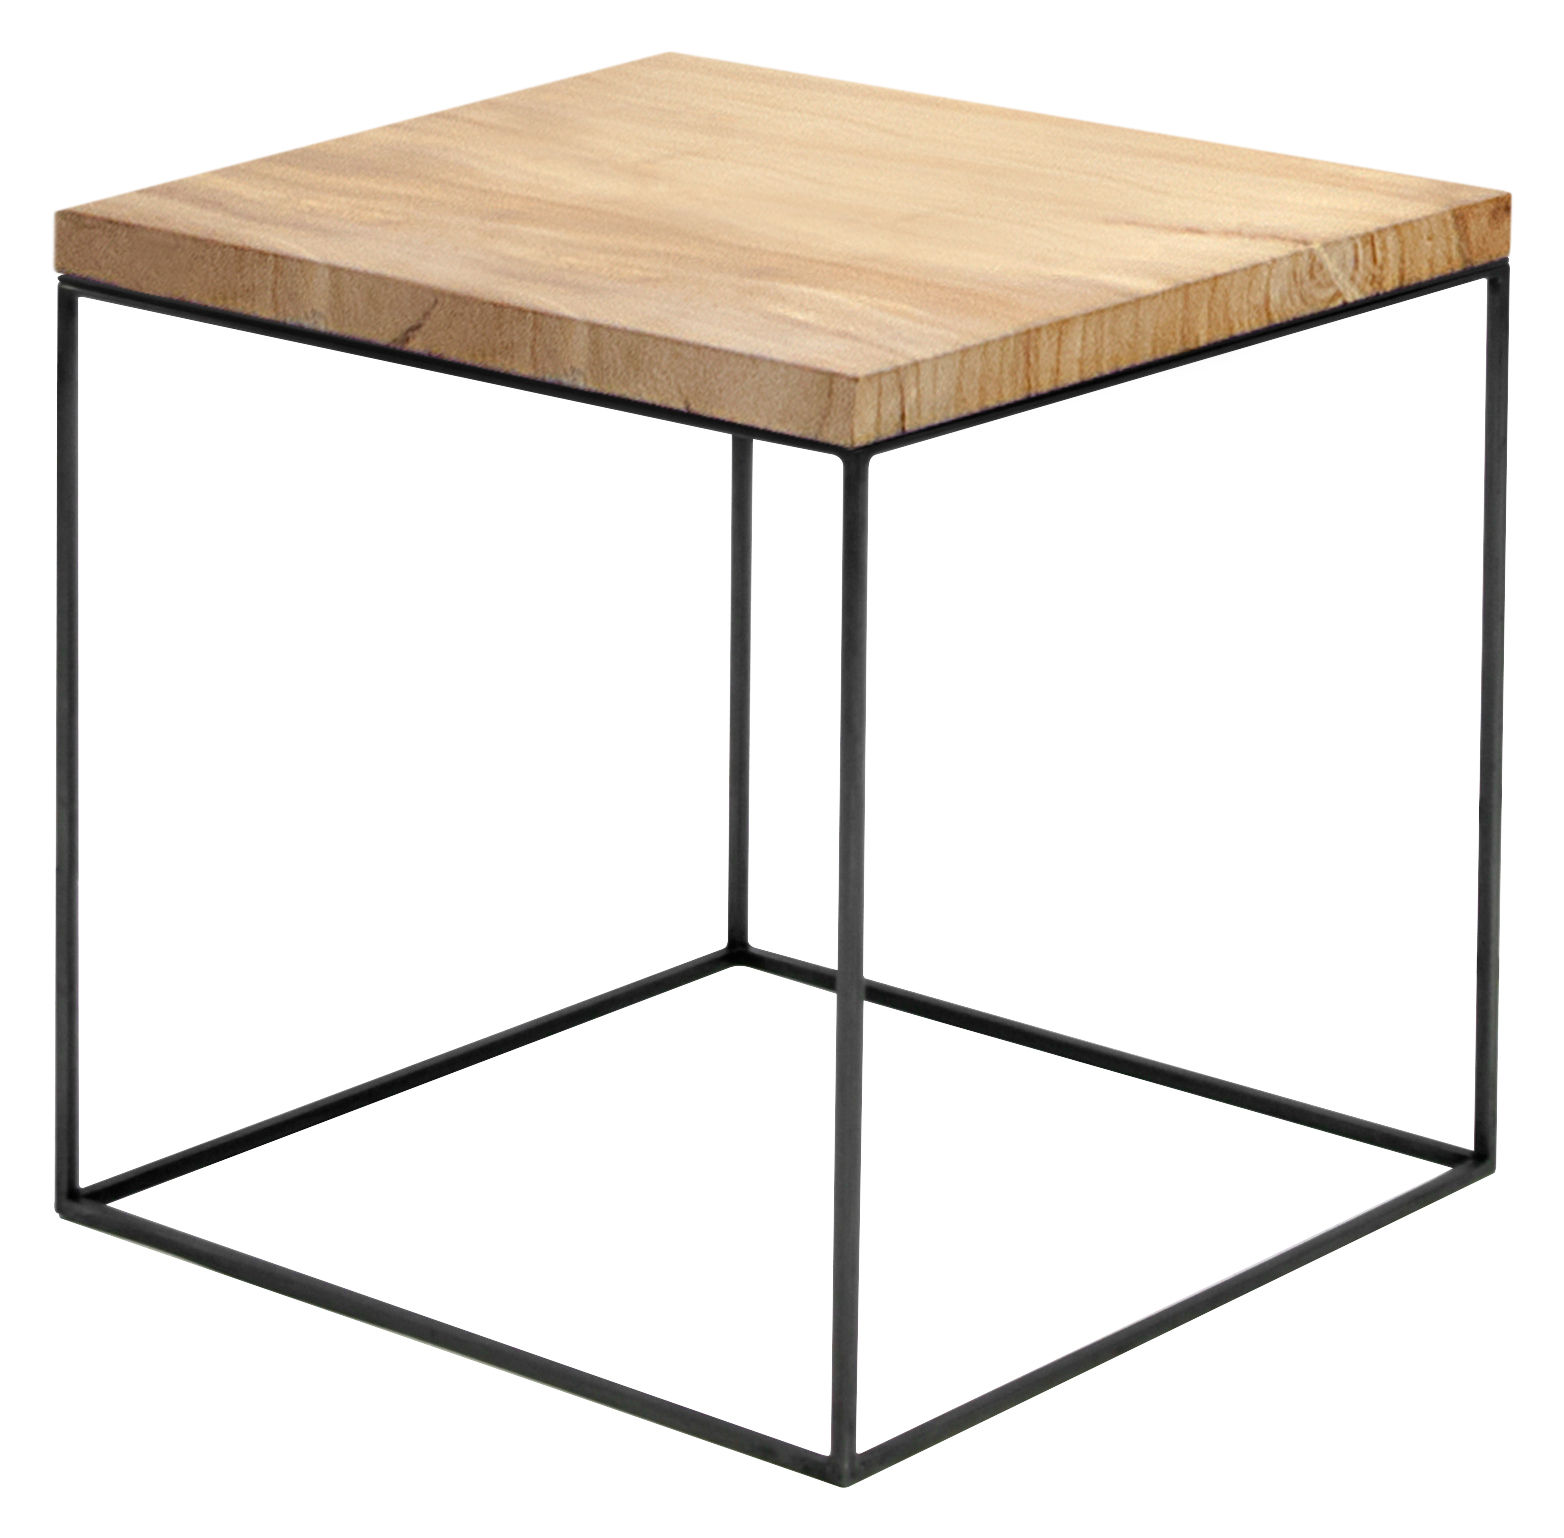 Natural Wood Coffee Table.Slim Irony Coffee Table By Zeus